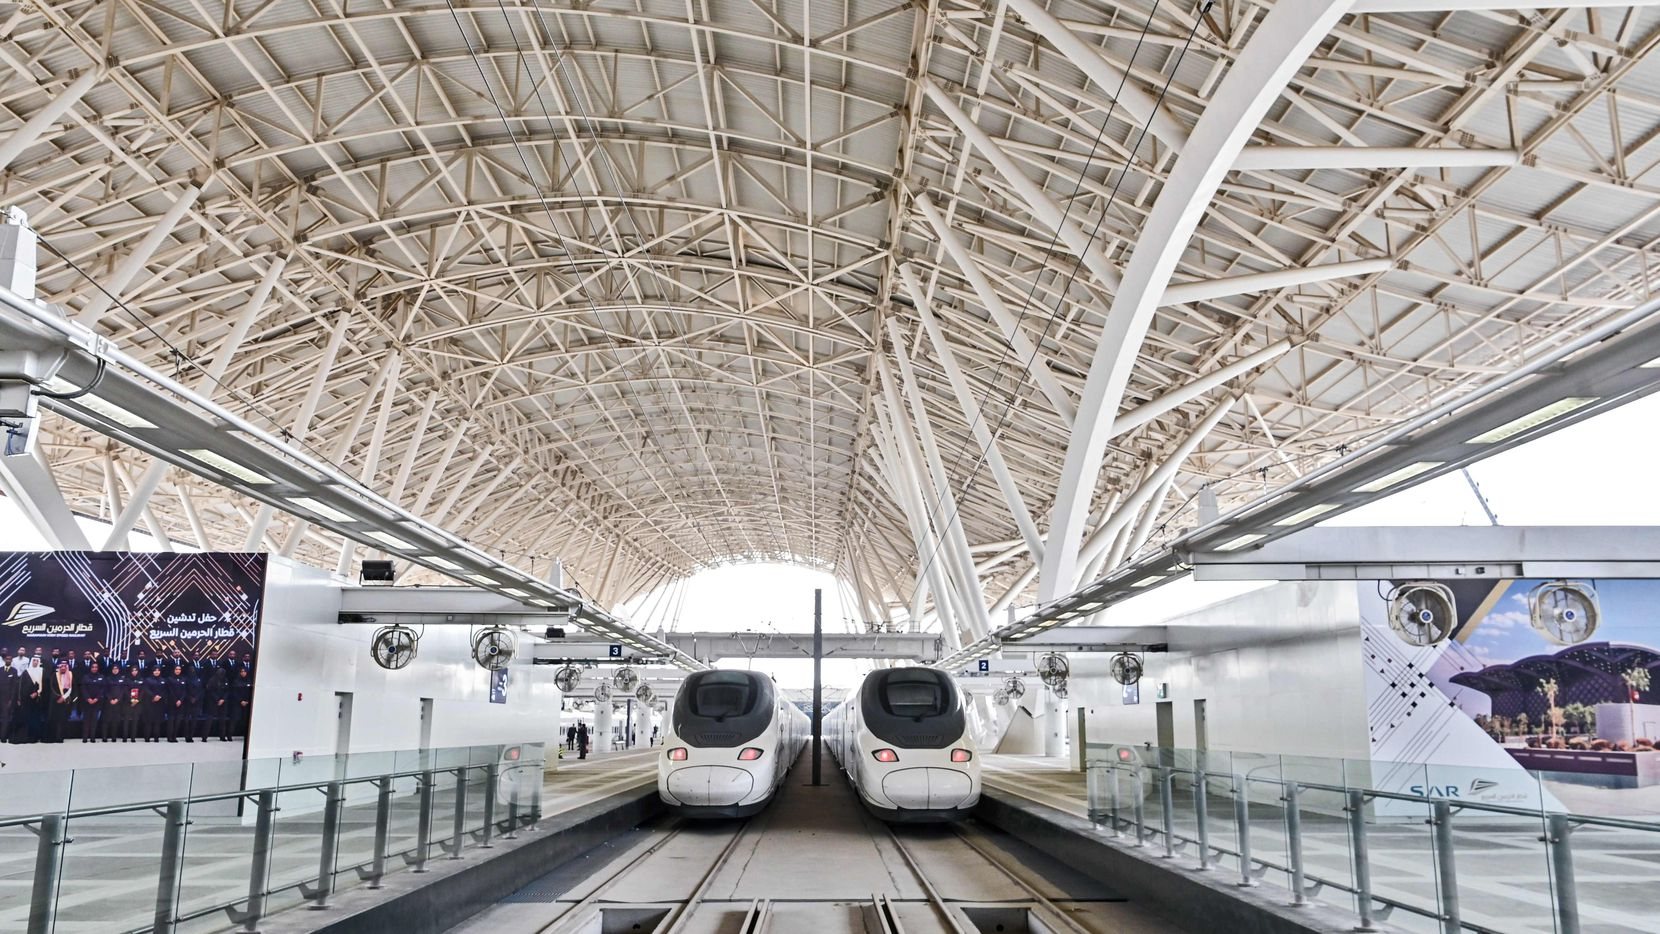 Saudi Arabia's Haramain High Speed train linking Mecca and Medina was inaugurated by King Salman in September 2018. It showed bullet trains can thrive even in hot climates like Texas'.